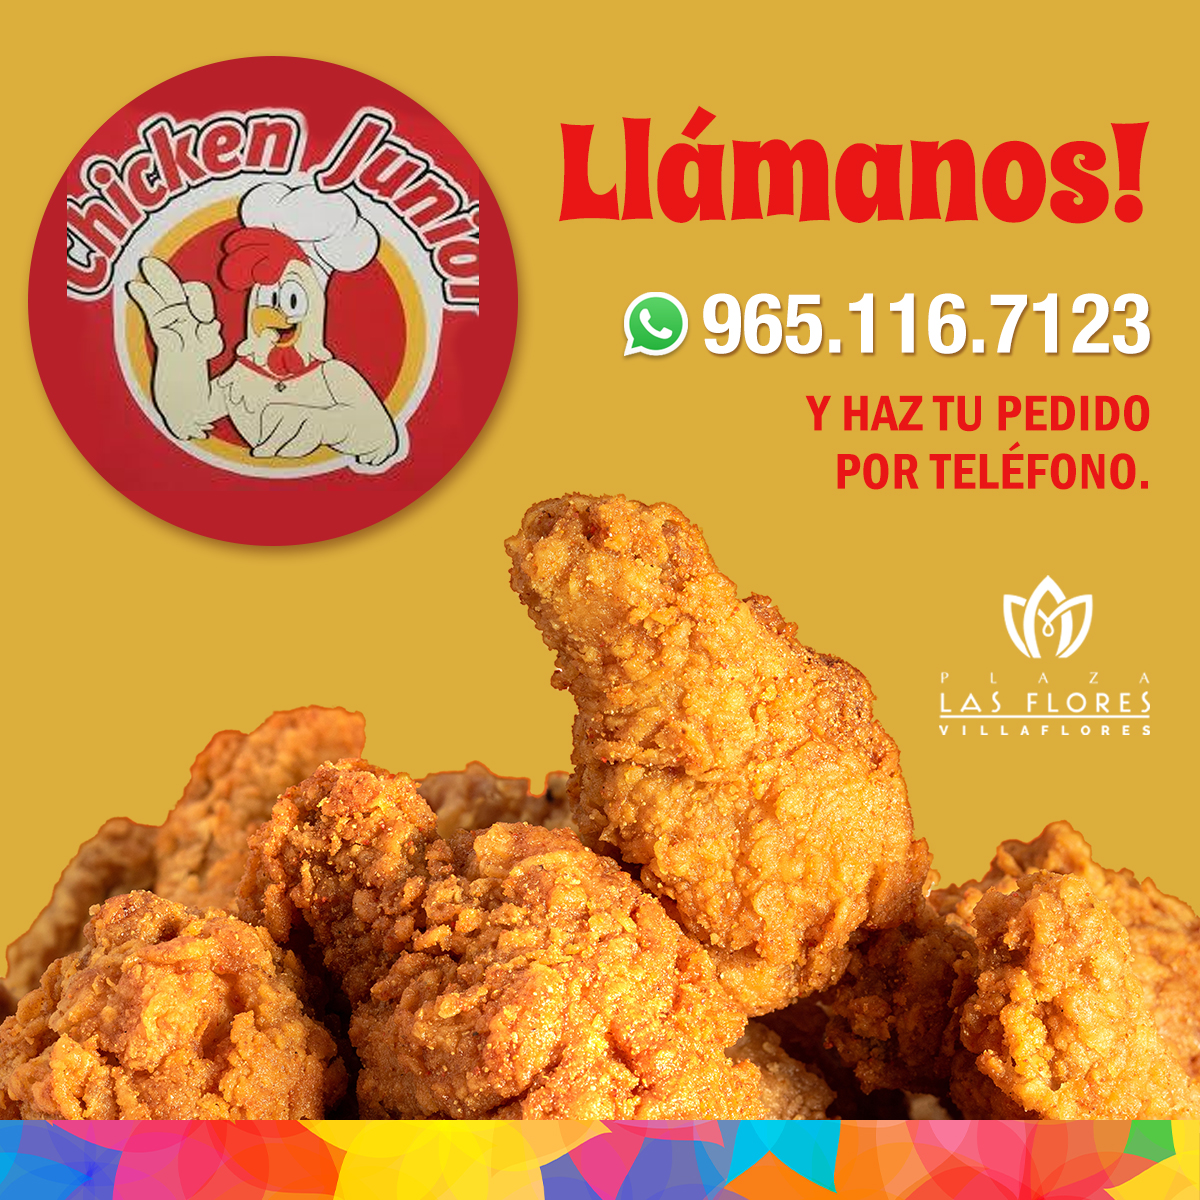 LasFlores-Telefonos-ChickenJr copy